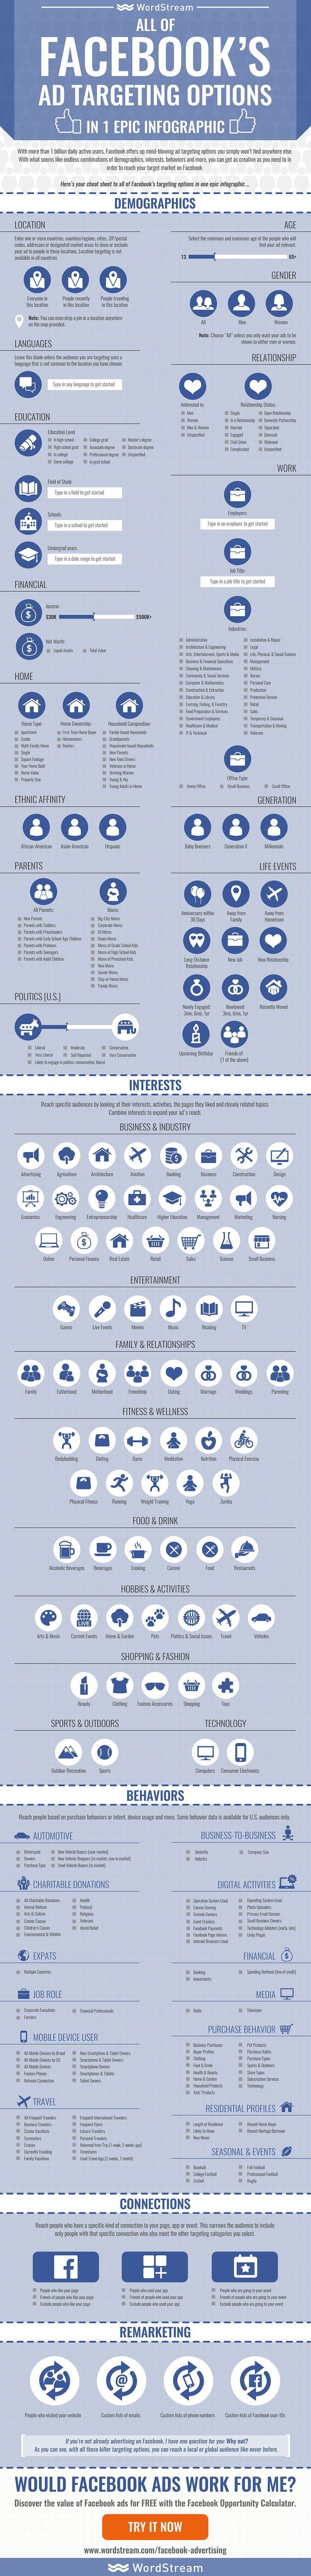 All of Facebooks Ad Targeting Options in 1 epic infographic http://giovannibenavides.com/the_creator/